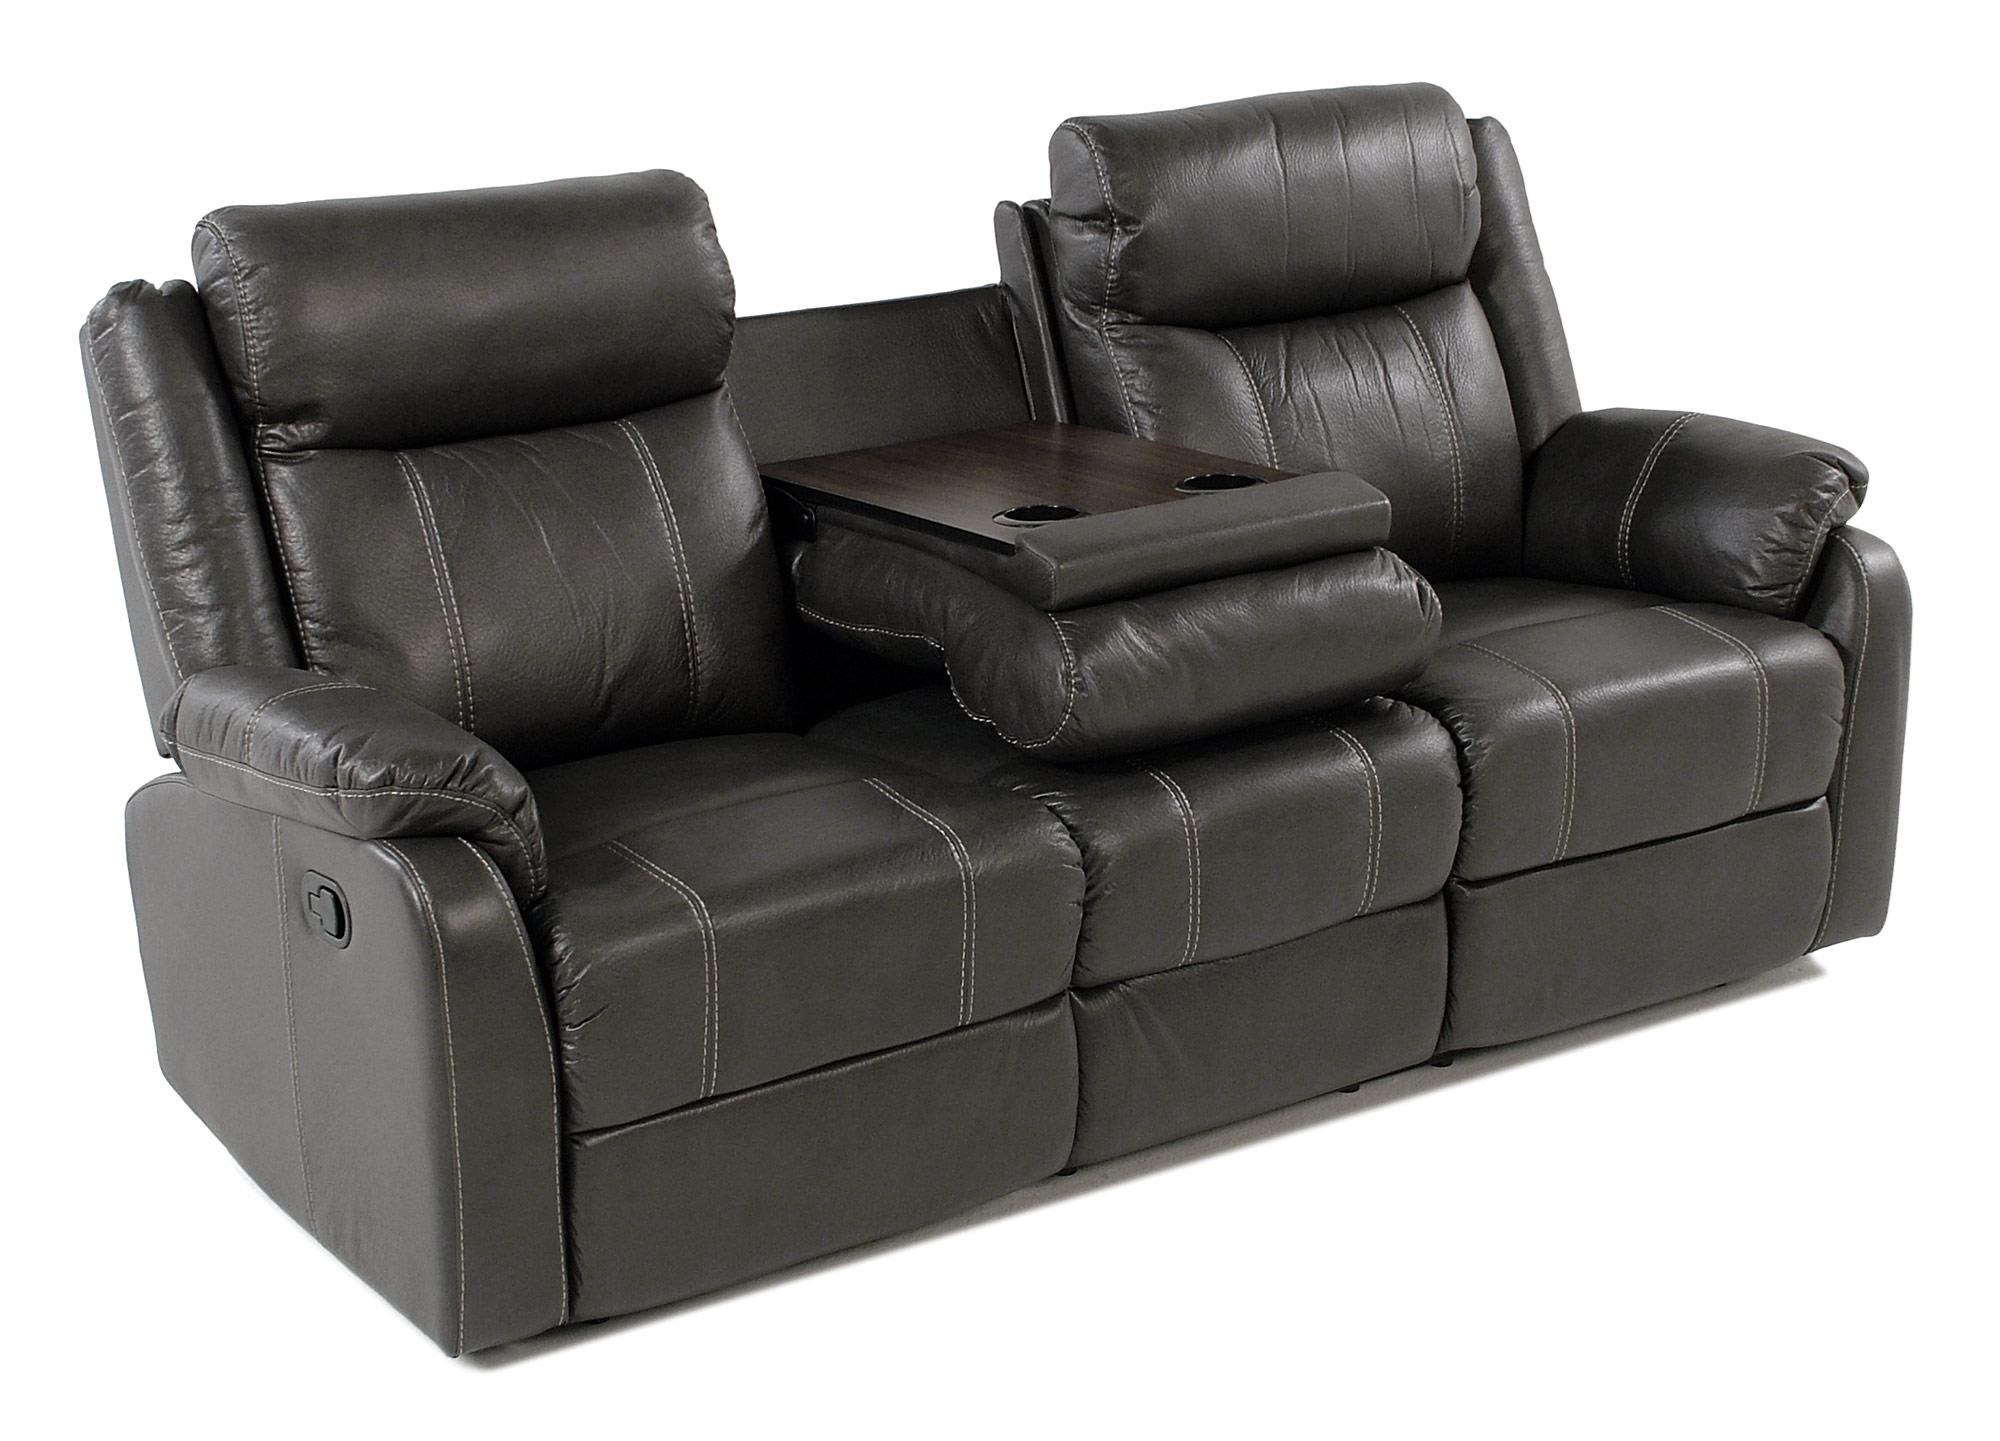 Valor Casual Reclining Sofa With Drop Down Table Rotmans